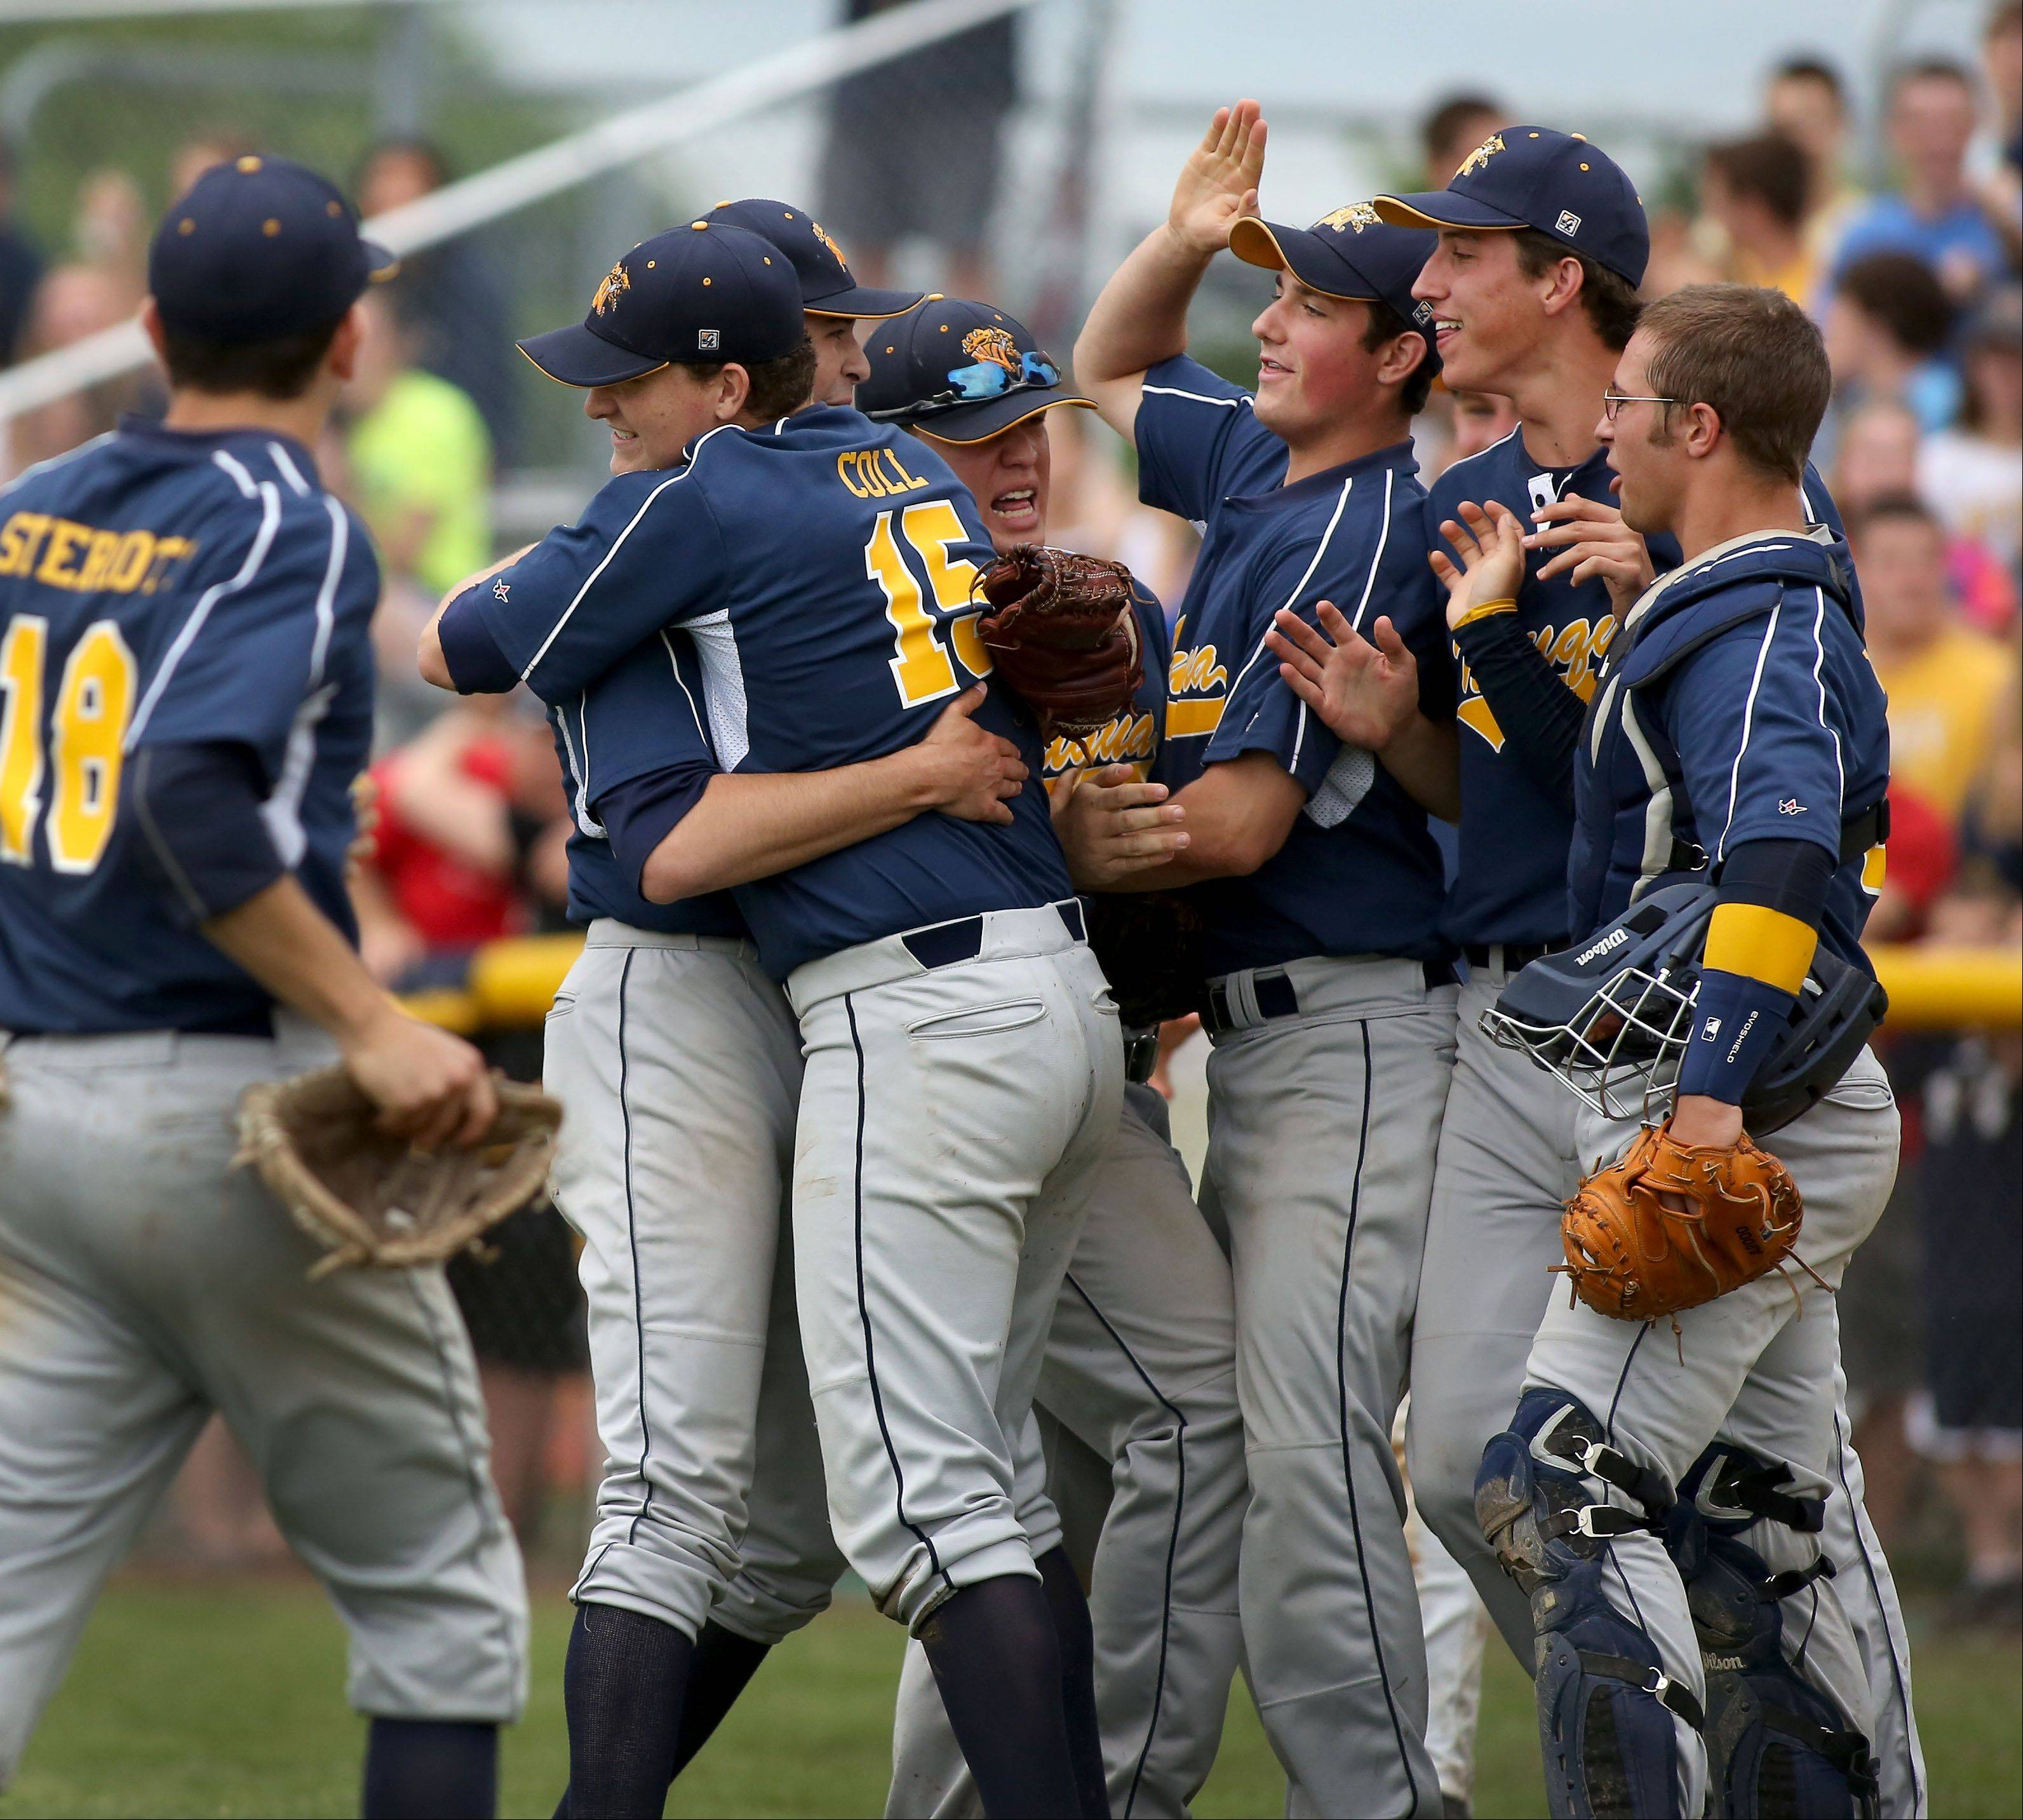 Neuqua Valley celebrates their win over Plainfield North in Class 4A sectional semifinals on Friday in Naperville.